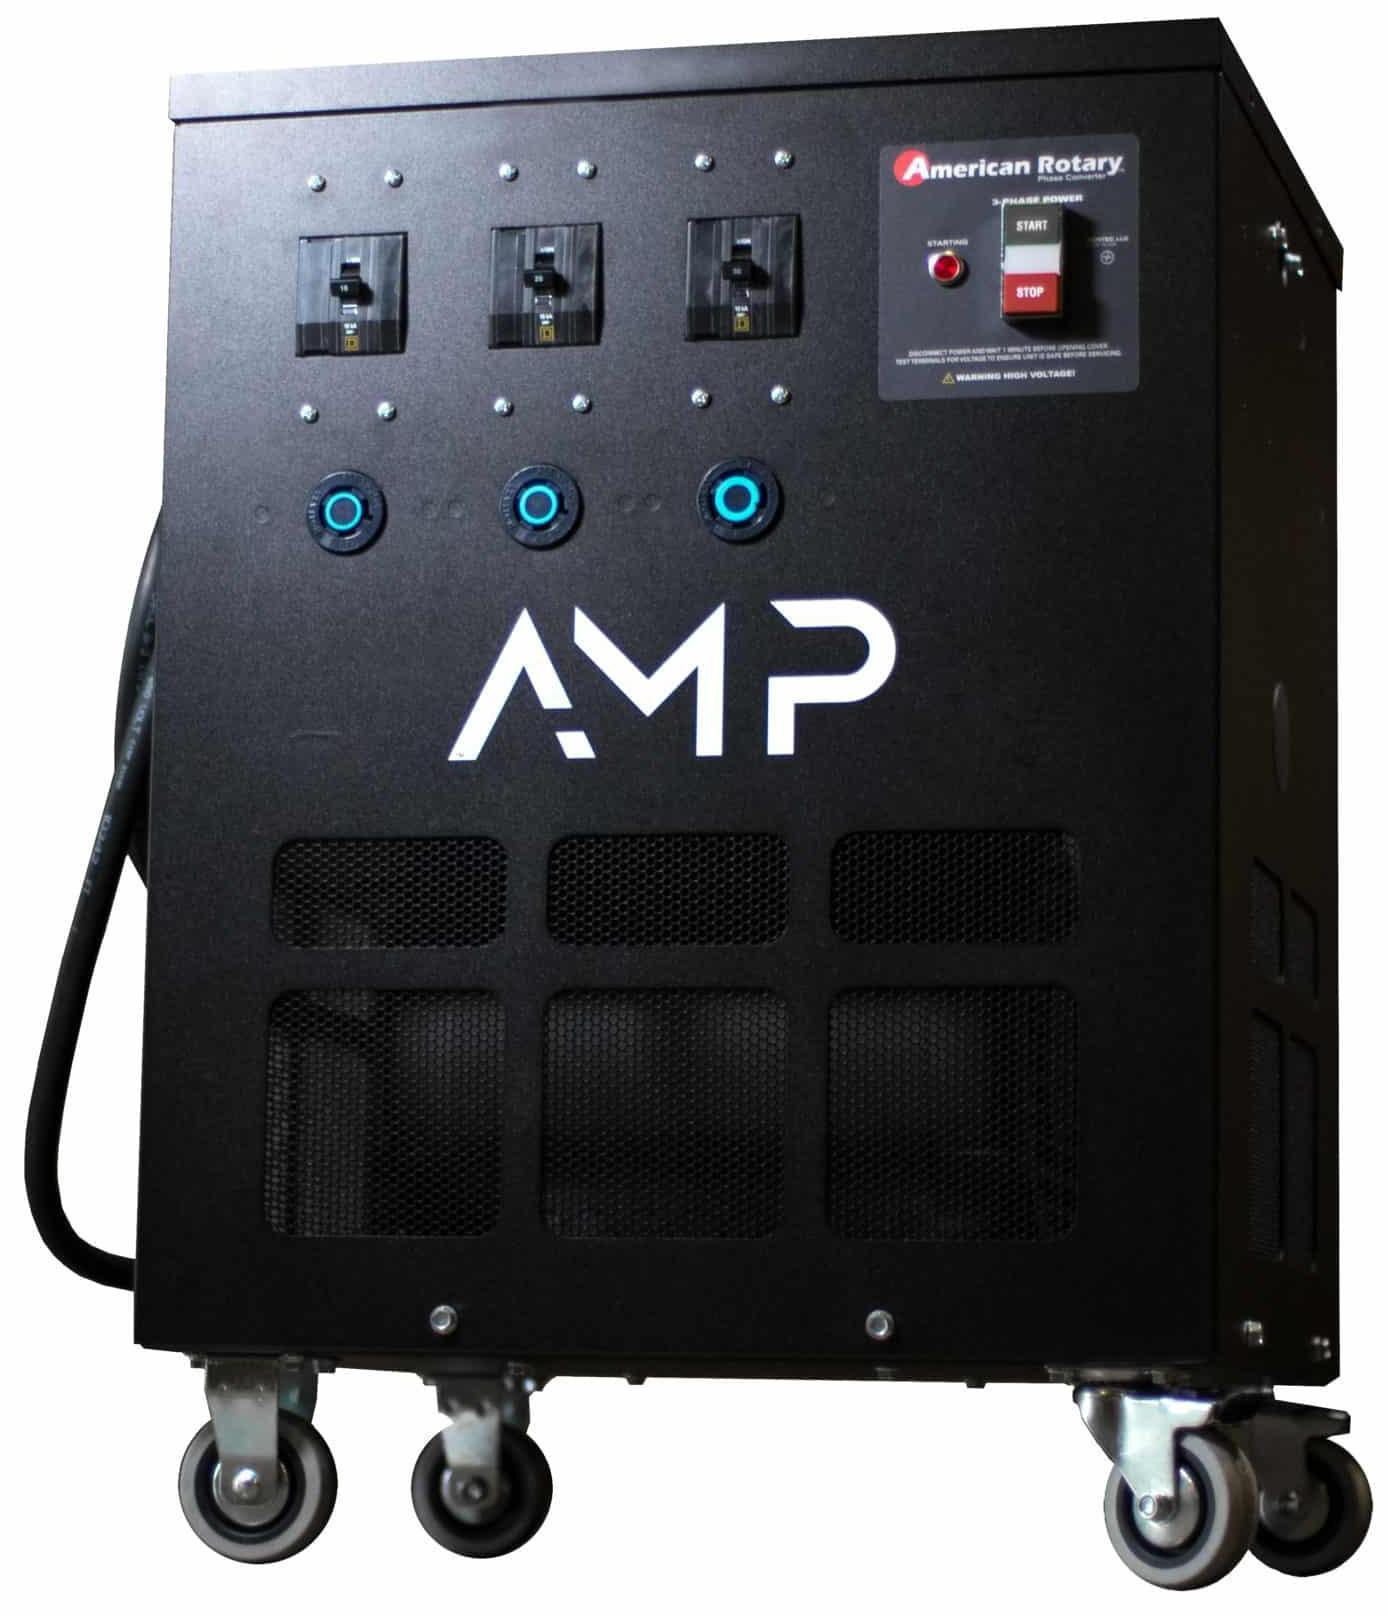 AMP Series Mobile Phase Converter